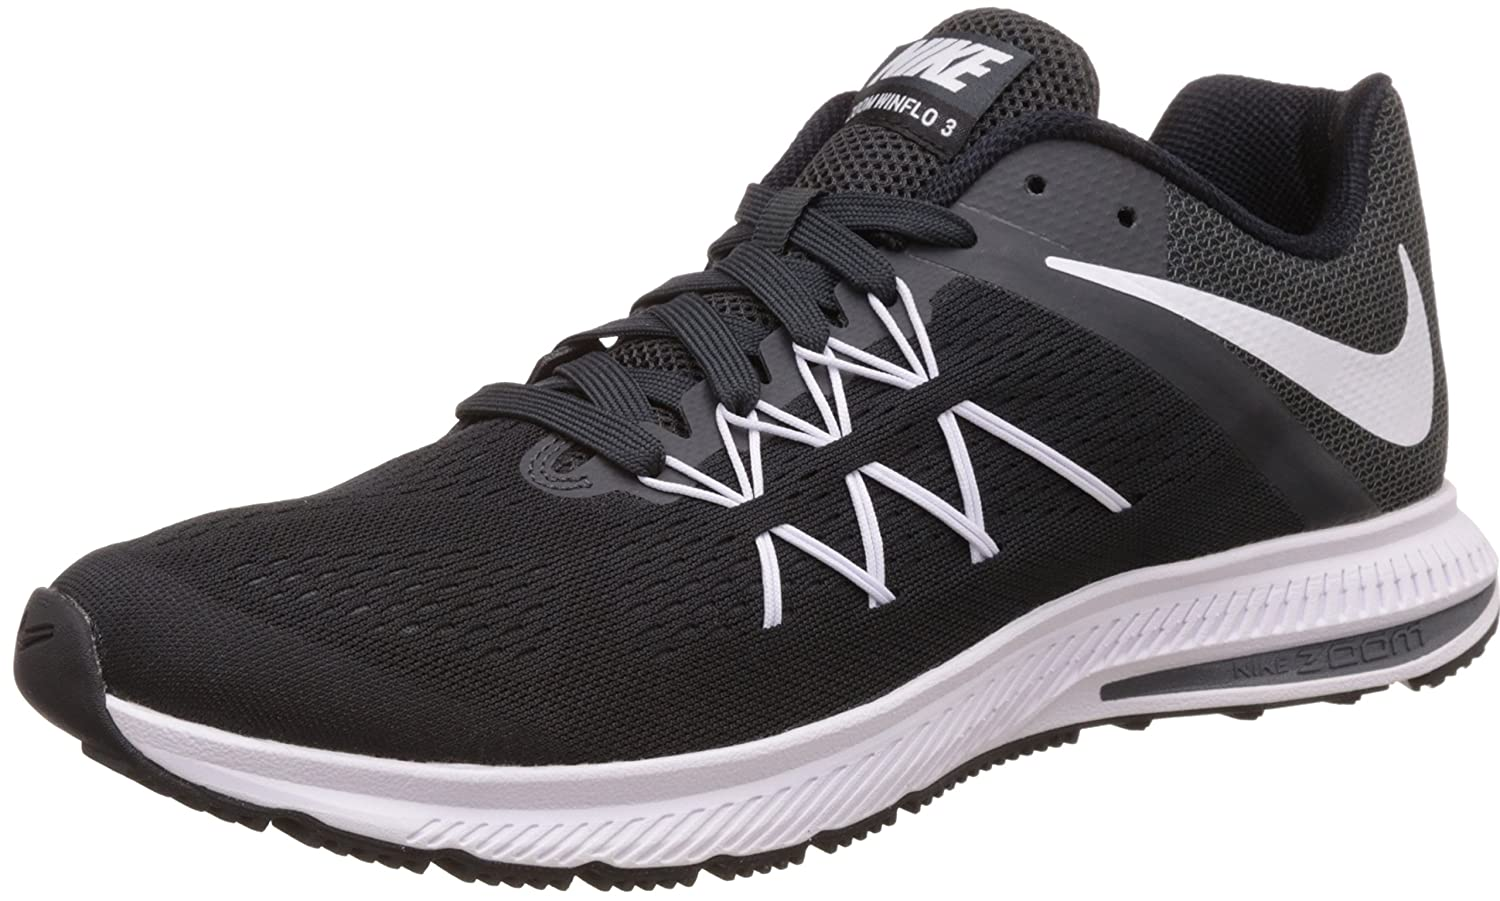 low priced 48163 f986c Nike Men's Zoom Winflo 3 Running Shoes: Amazon.co.uk: Shoes ...